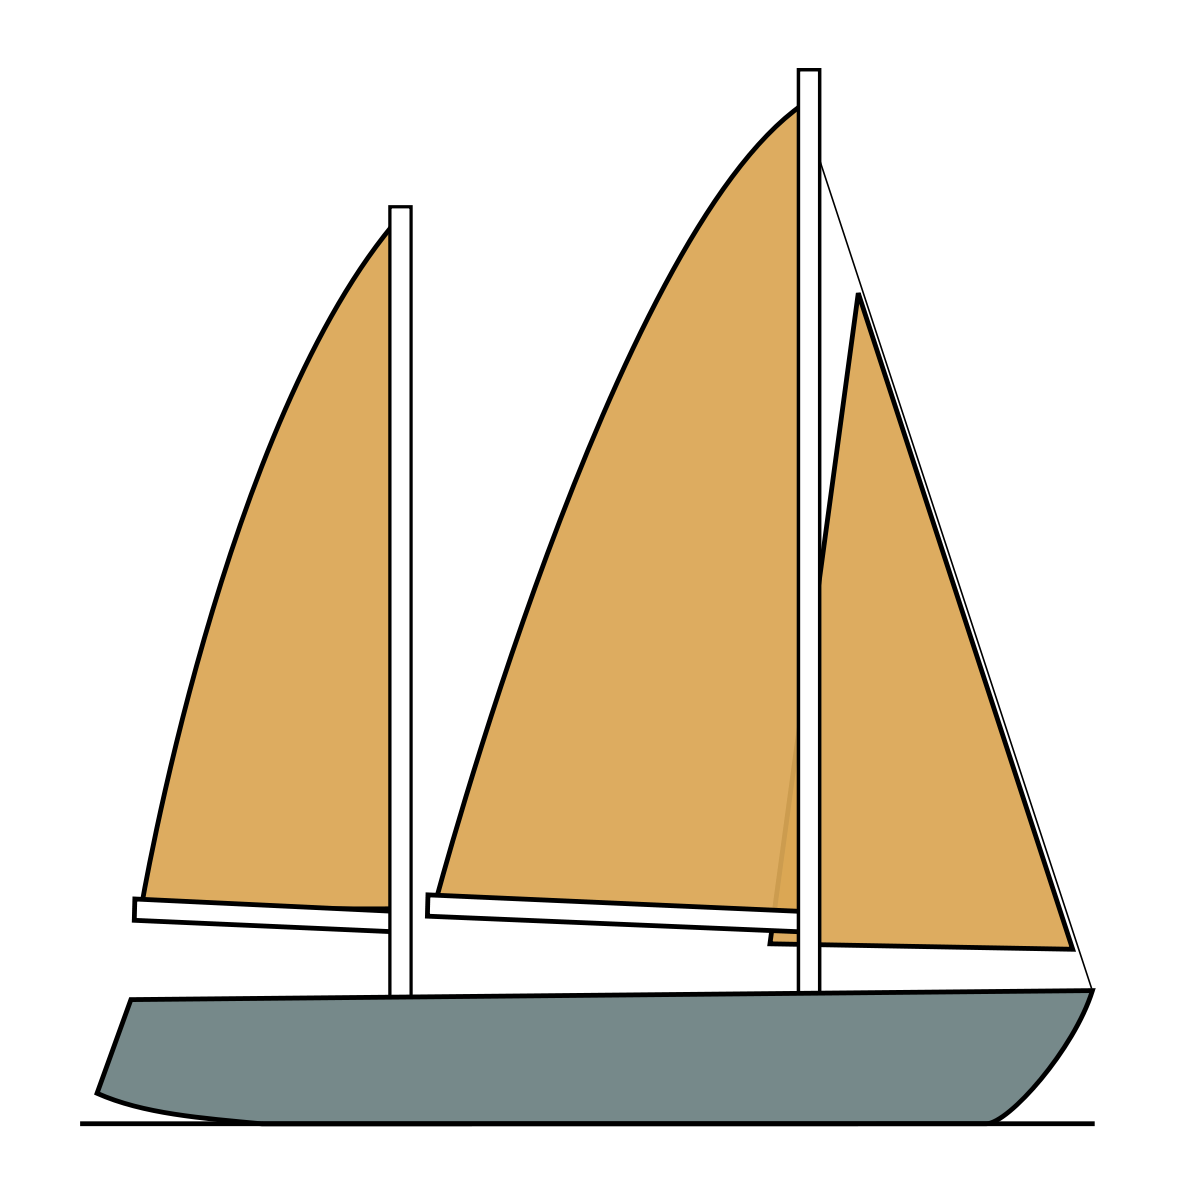 svg royalty free library Yacht clipart vinta. Ketch wikipedia